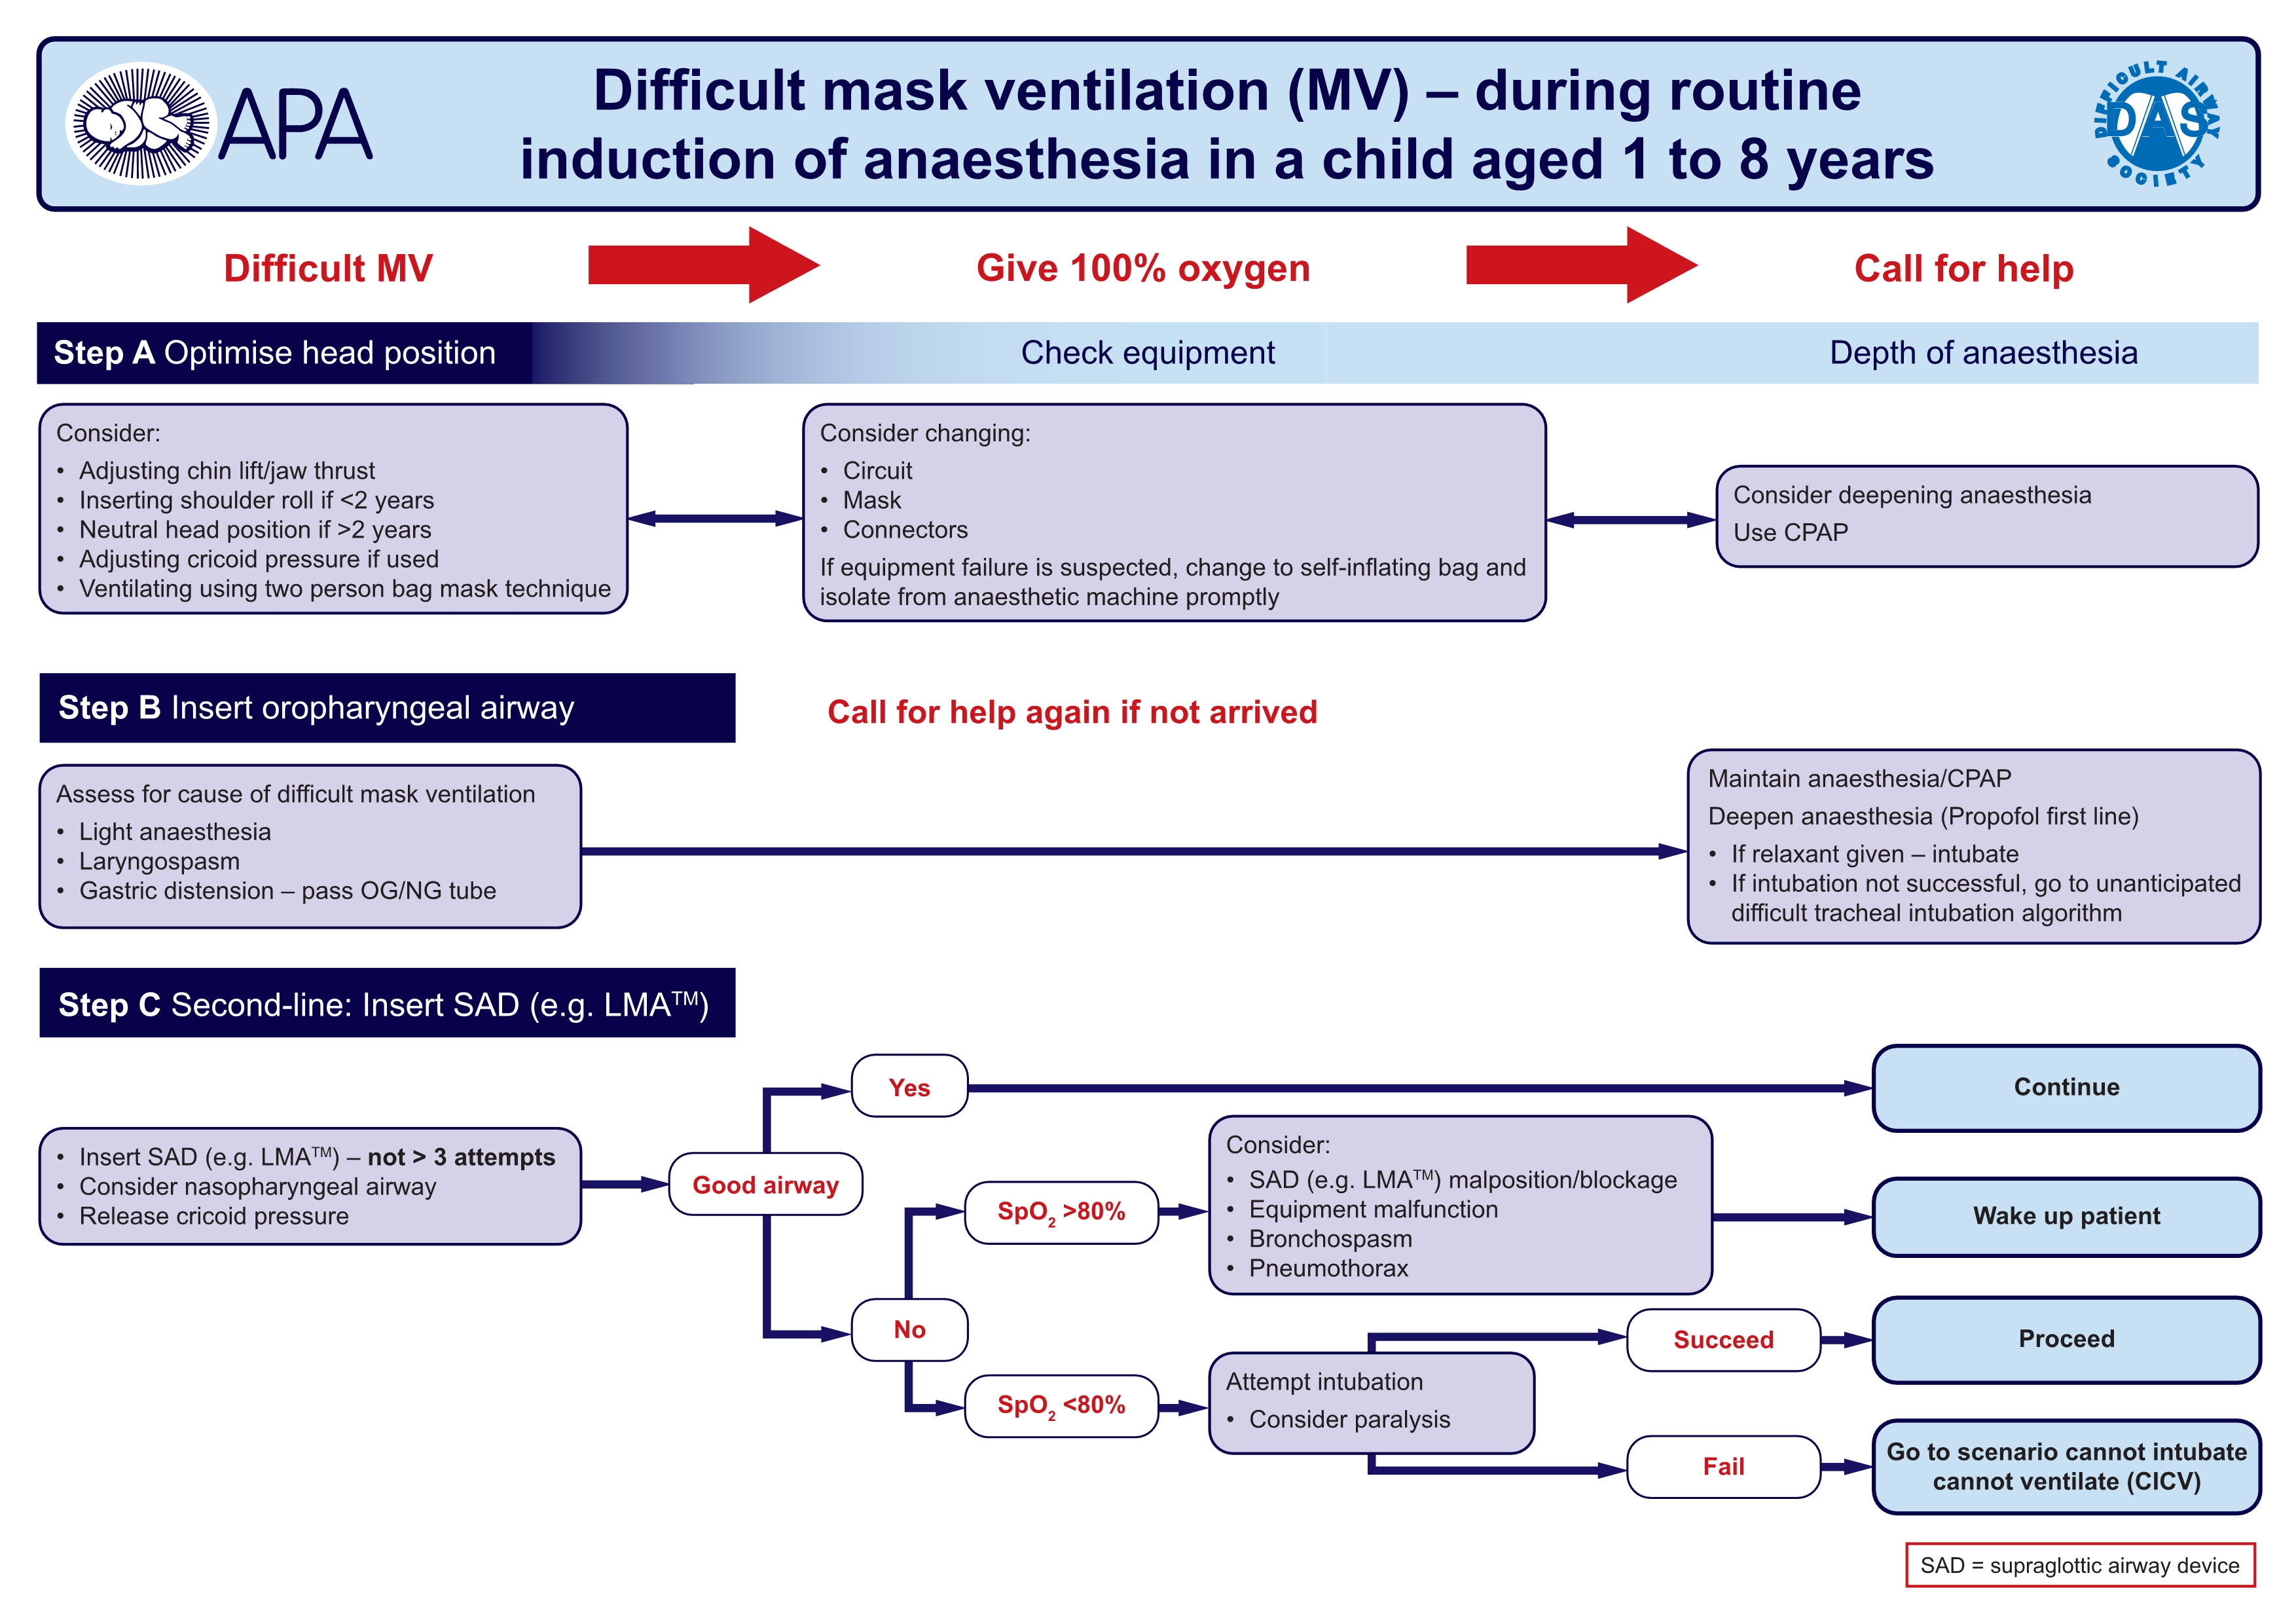 DAS guidelines for management of unanticipated difficult intubation in adults